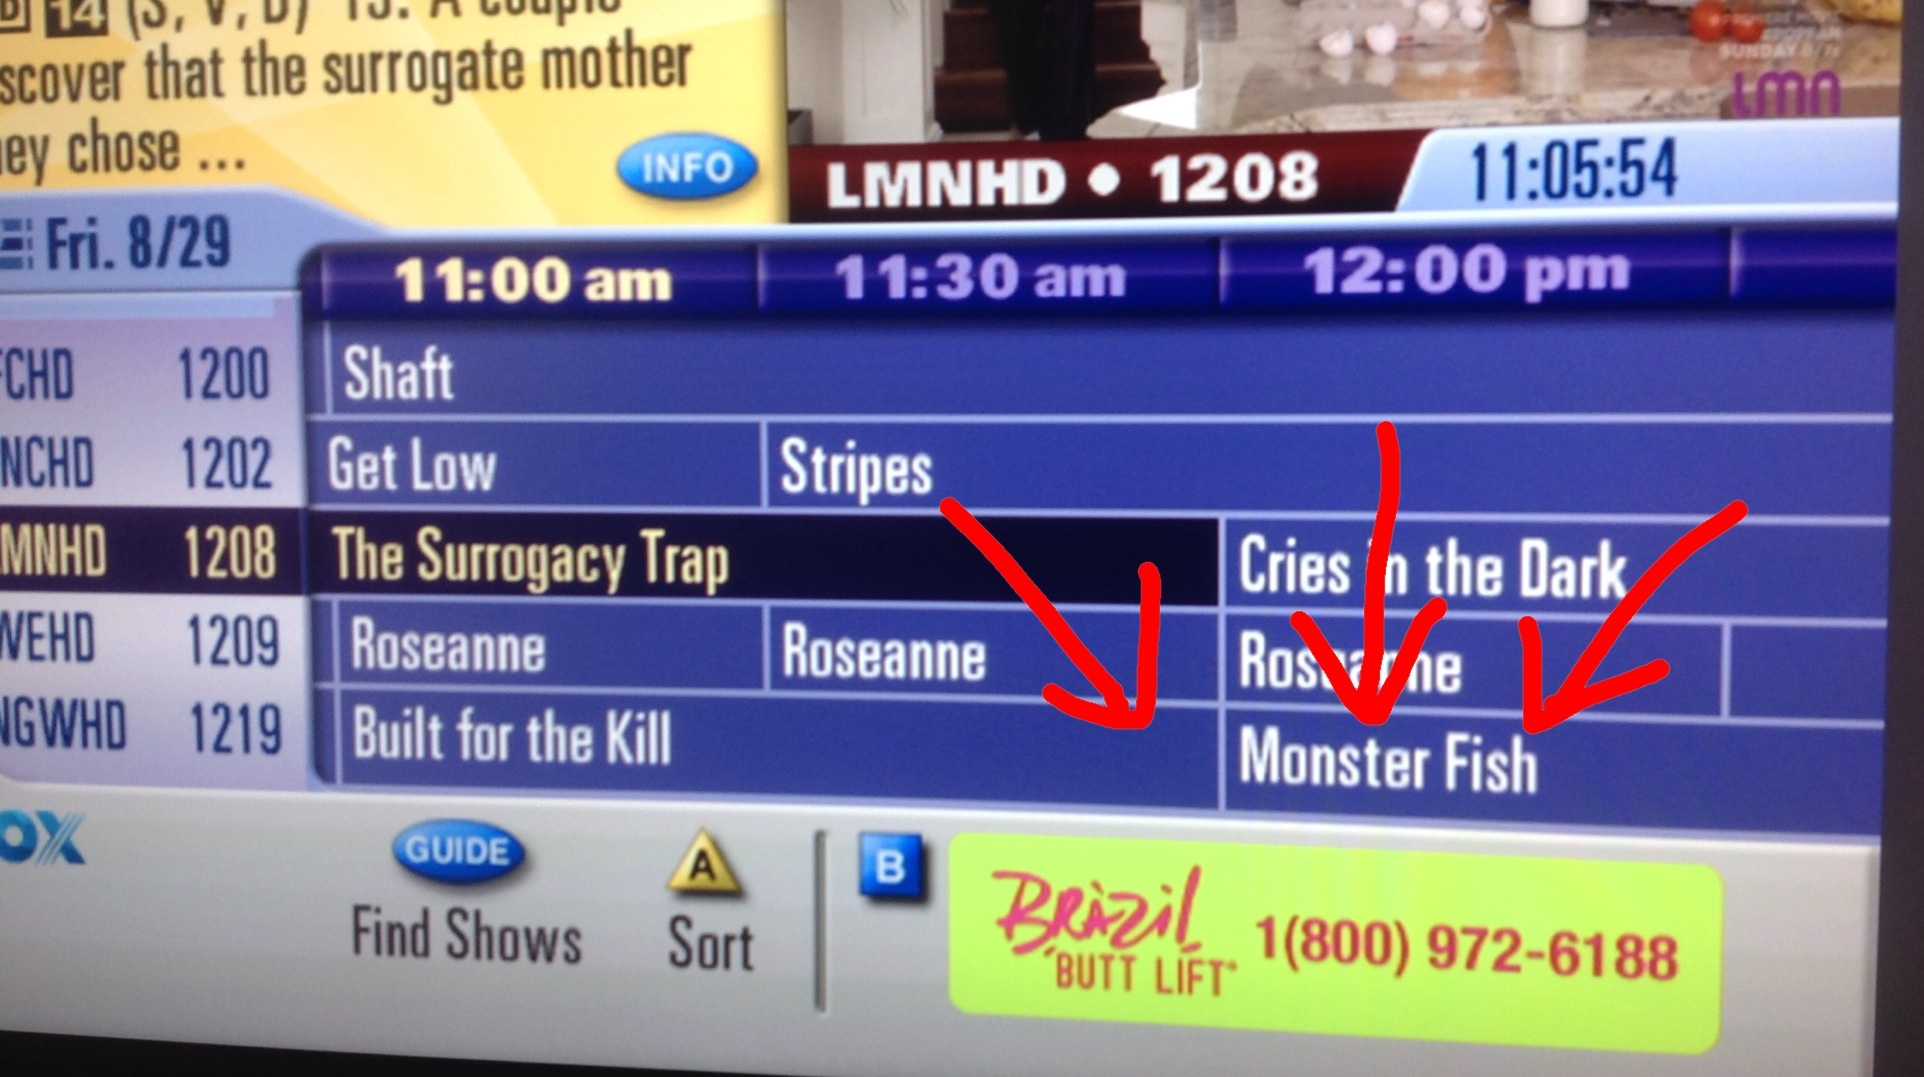 Cox goleta tv guide.